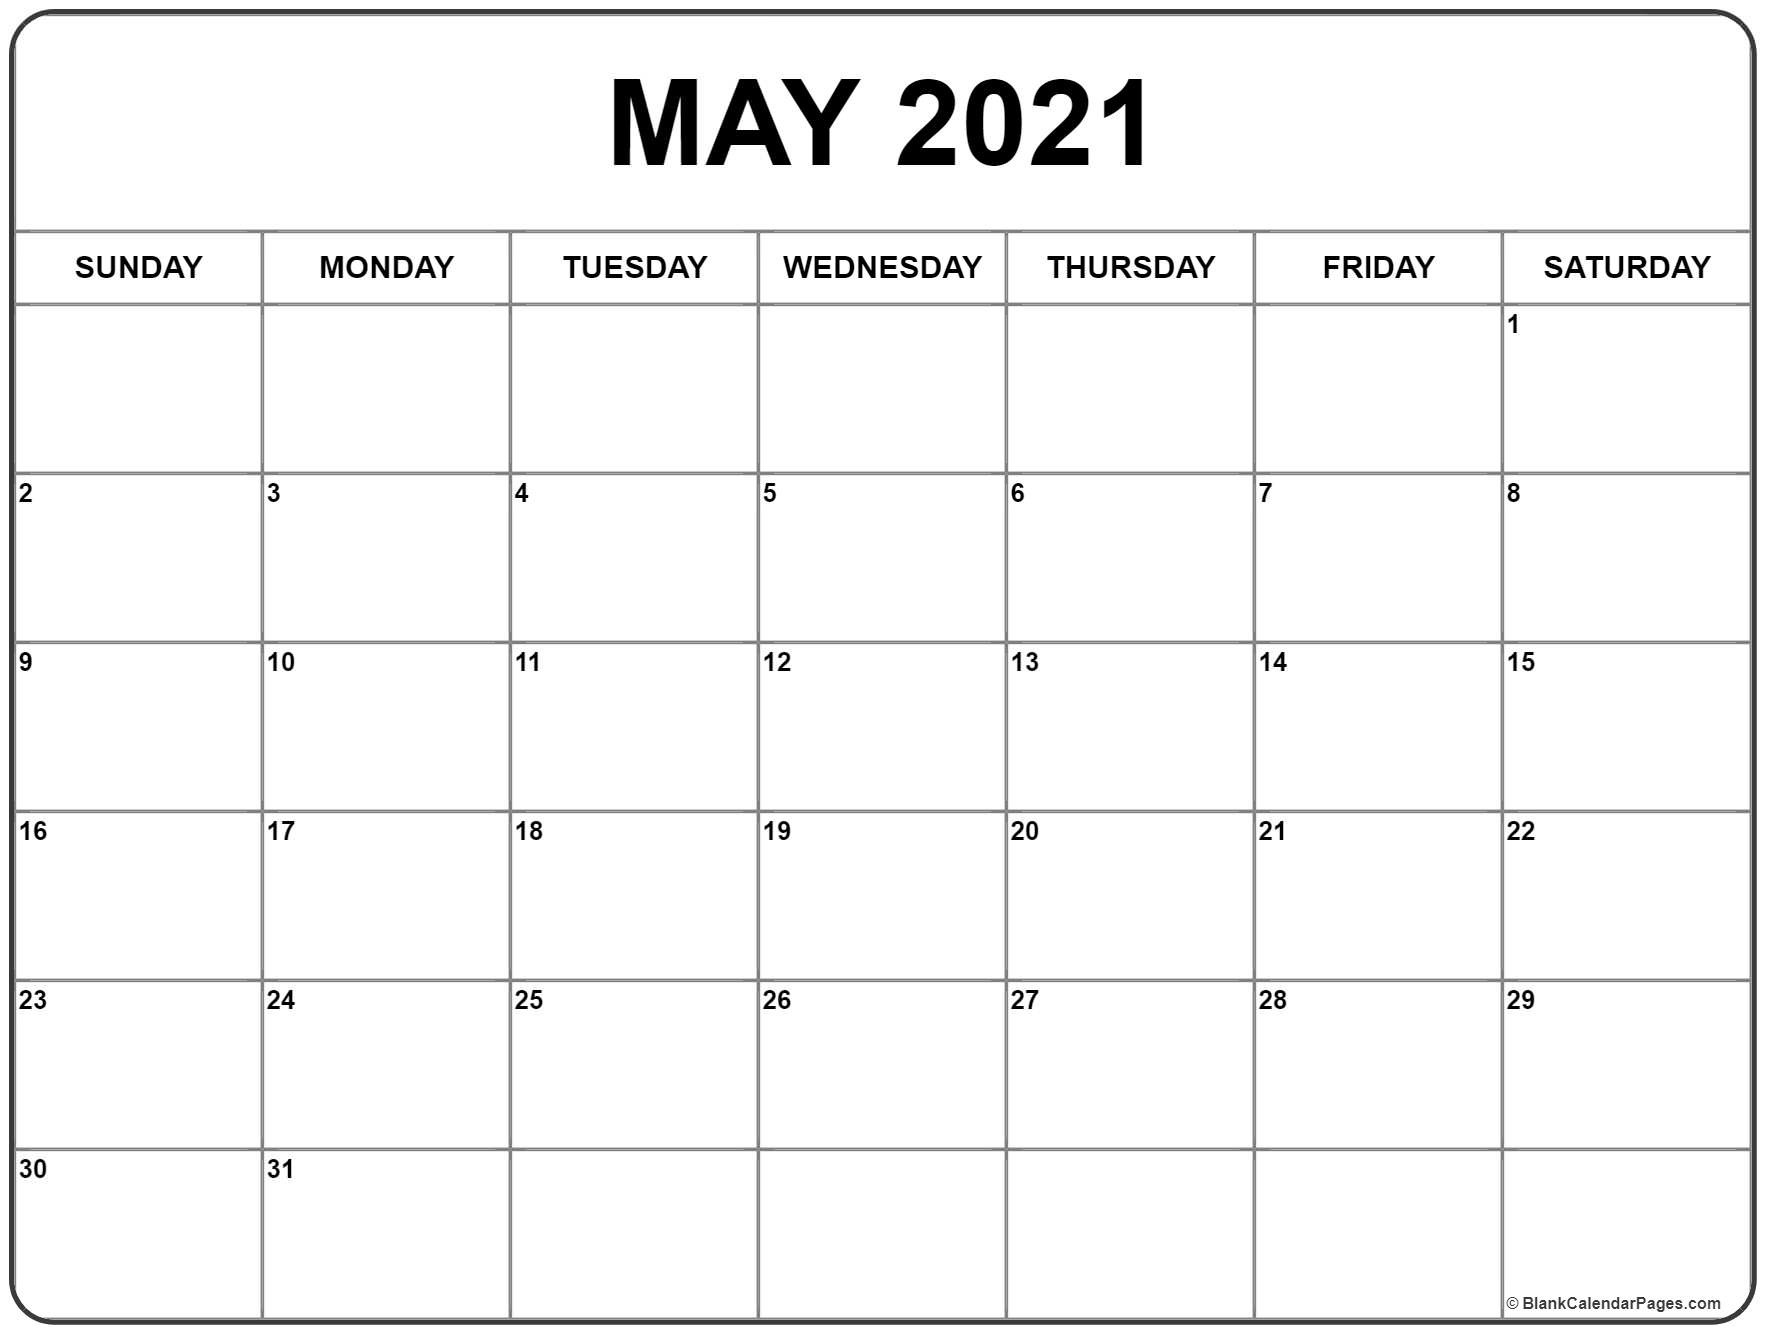 May 2021 Calendar | Free Printable Monthly Calendars-2021 Print Free Calendars Without Downloading